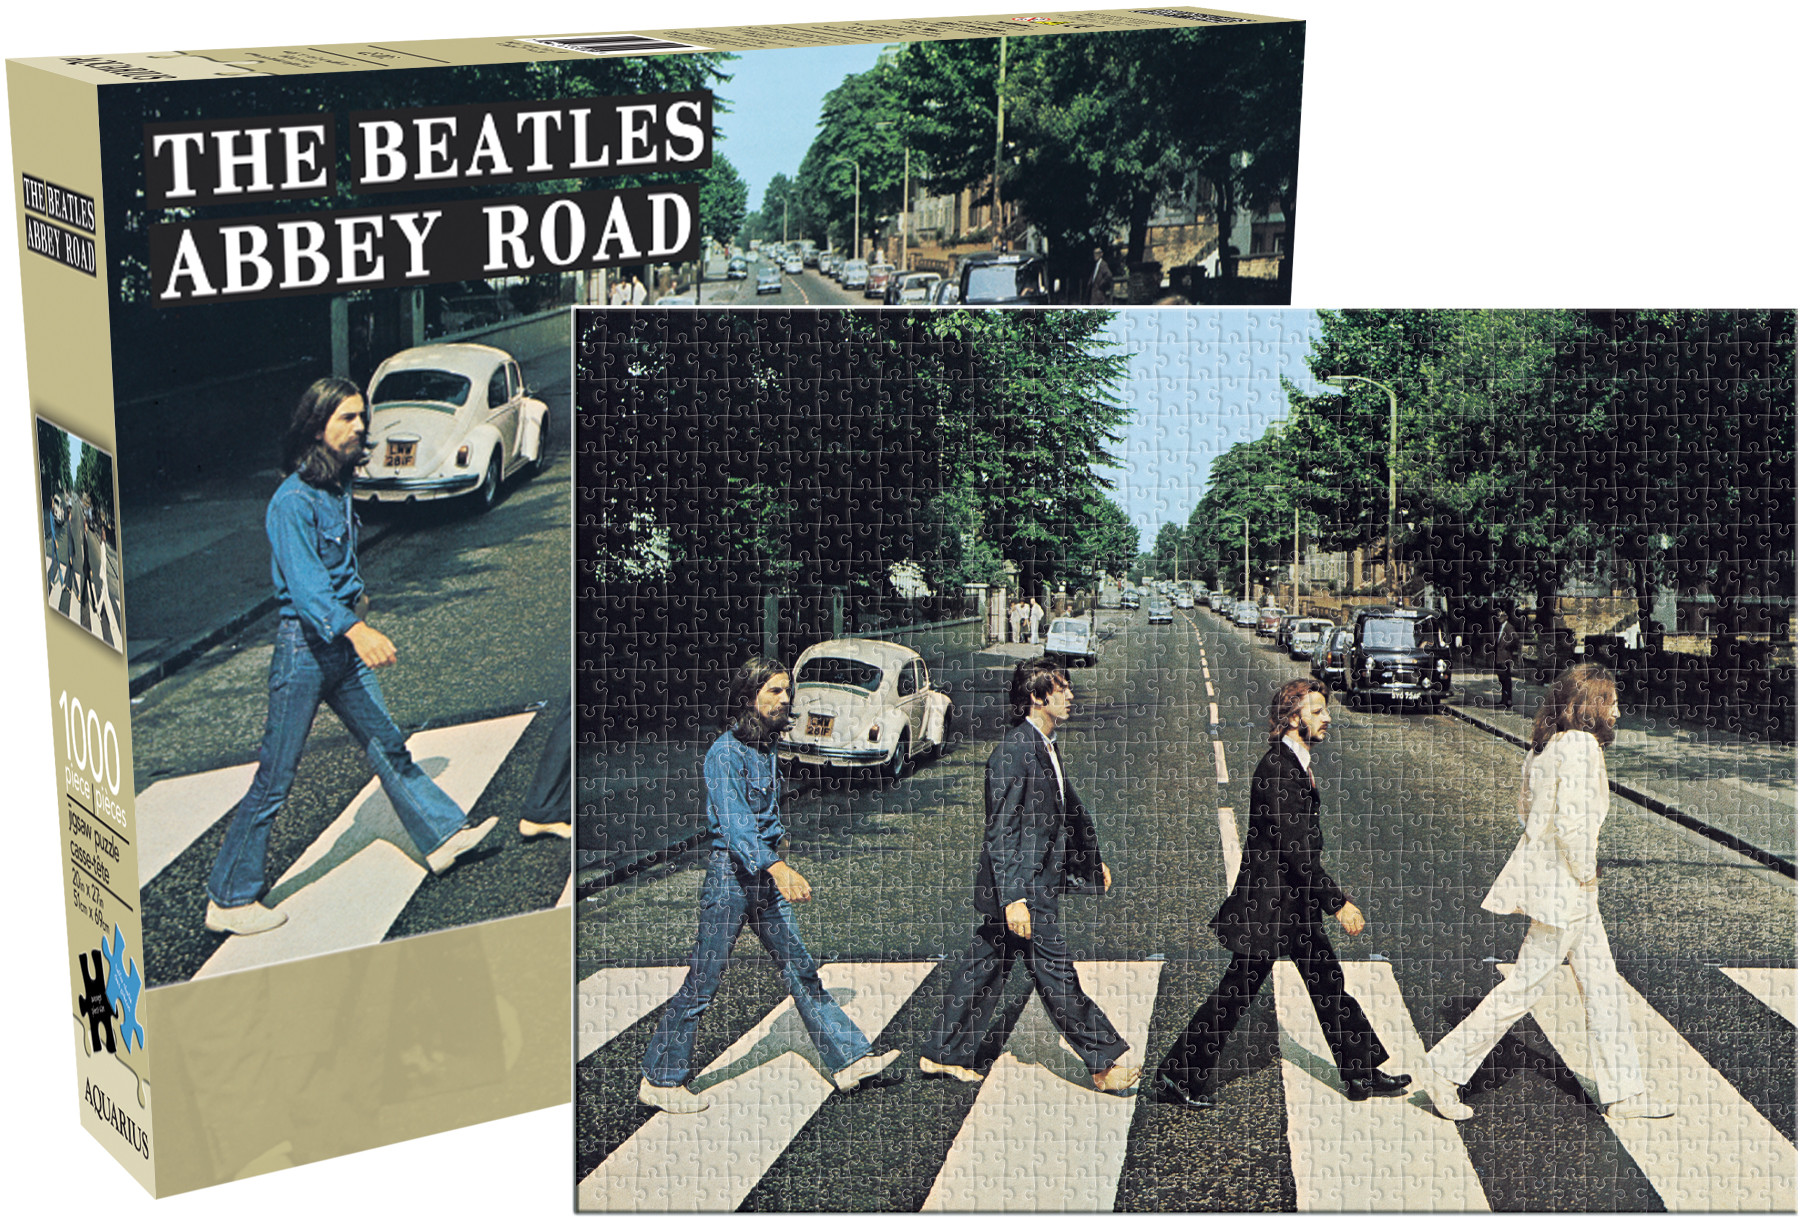 Beatles' Abbey Road album